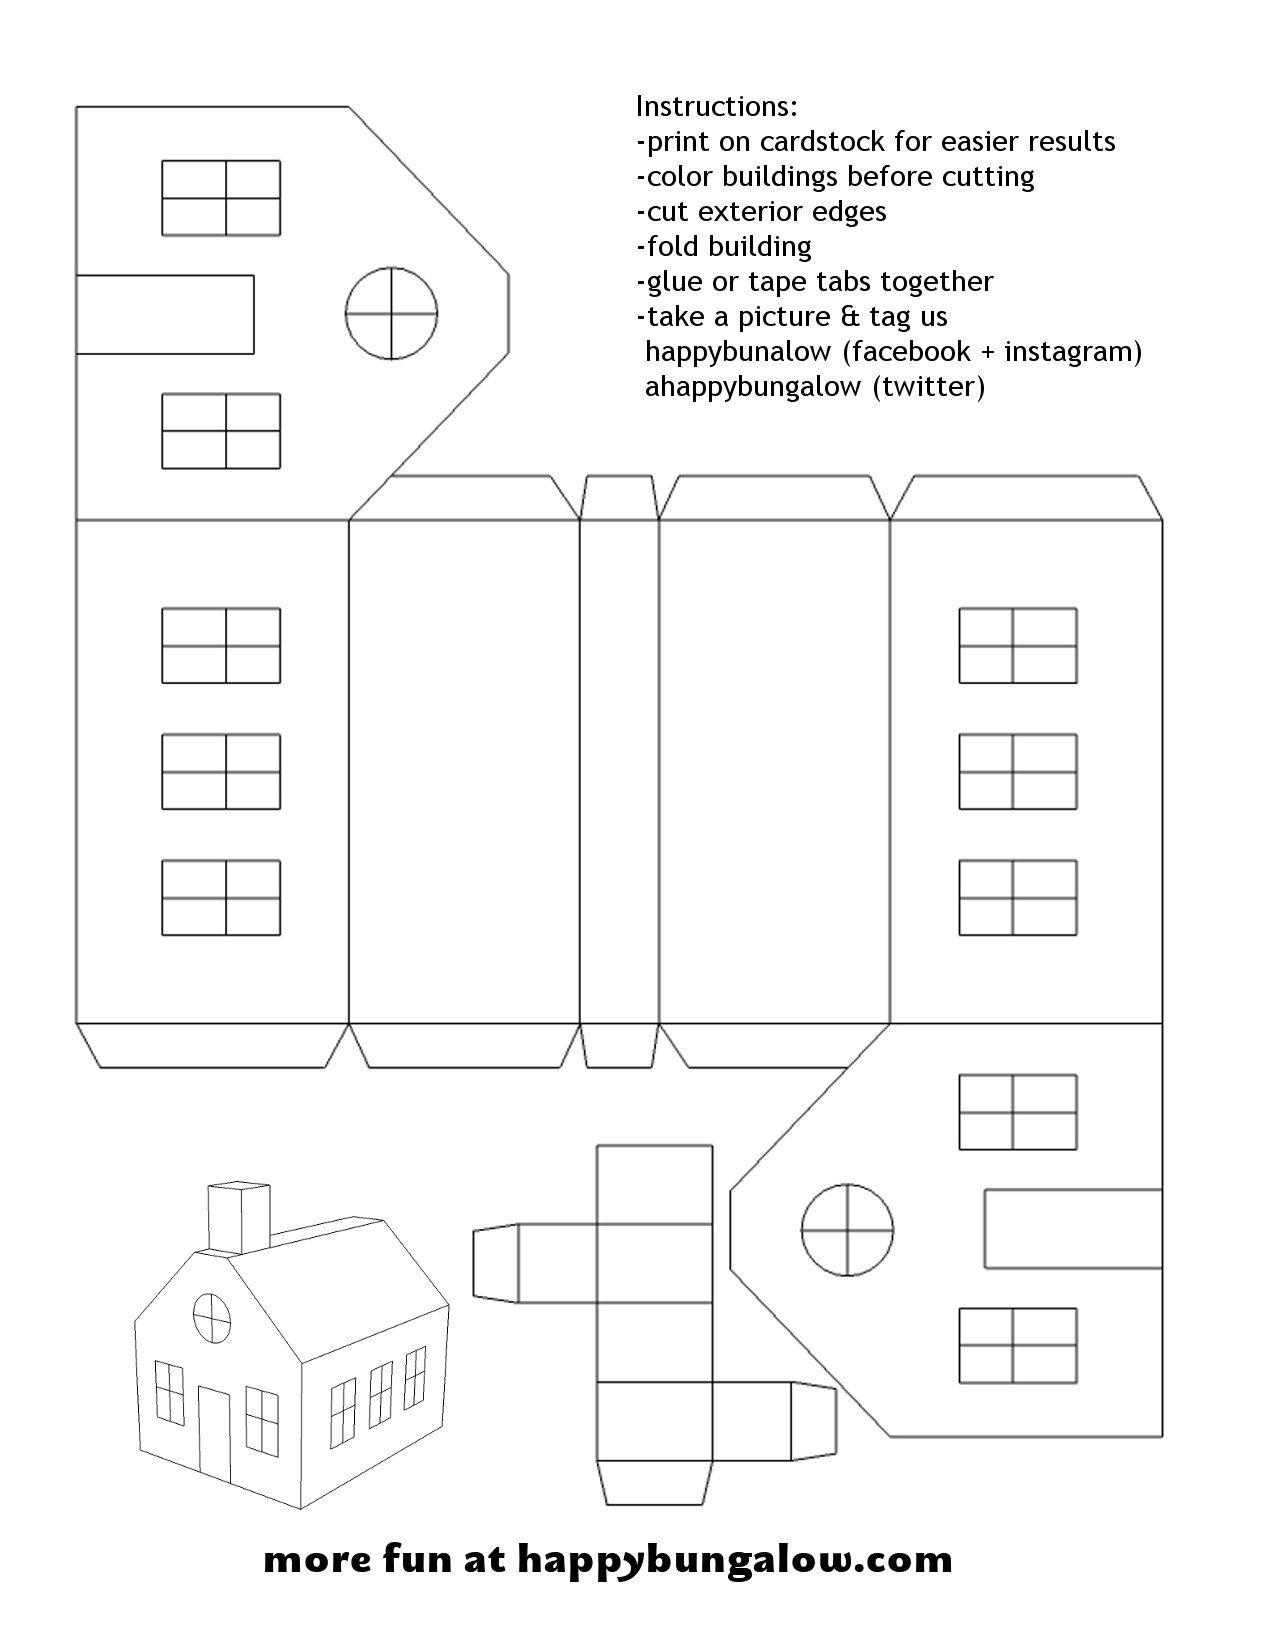 Print On 8 5x11 Paper Cardstock Works Best More At Https Happybungalow Com Papervillage Php Paper House Template Diy Christmas Village House Template